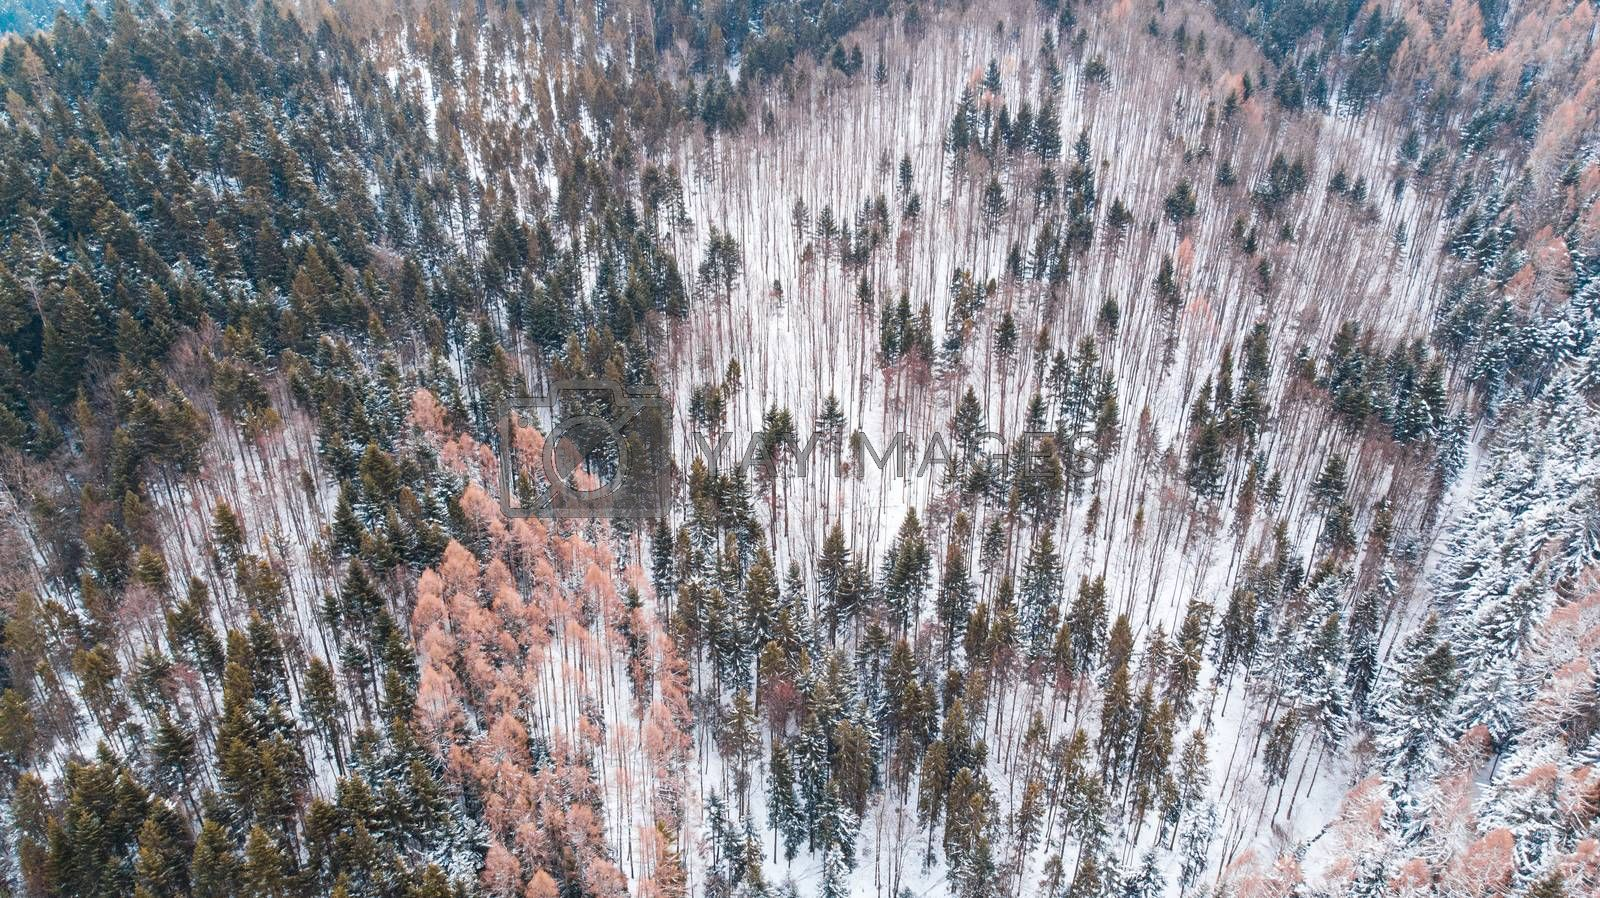 Wilderness at Winter Time. Climate Change and Snowless Winter. Aerial Drone View.